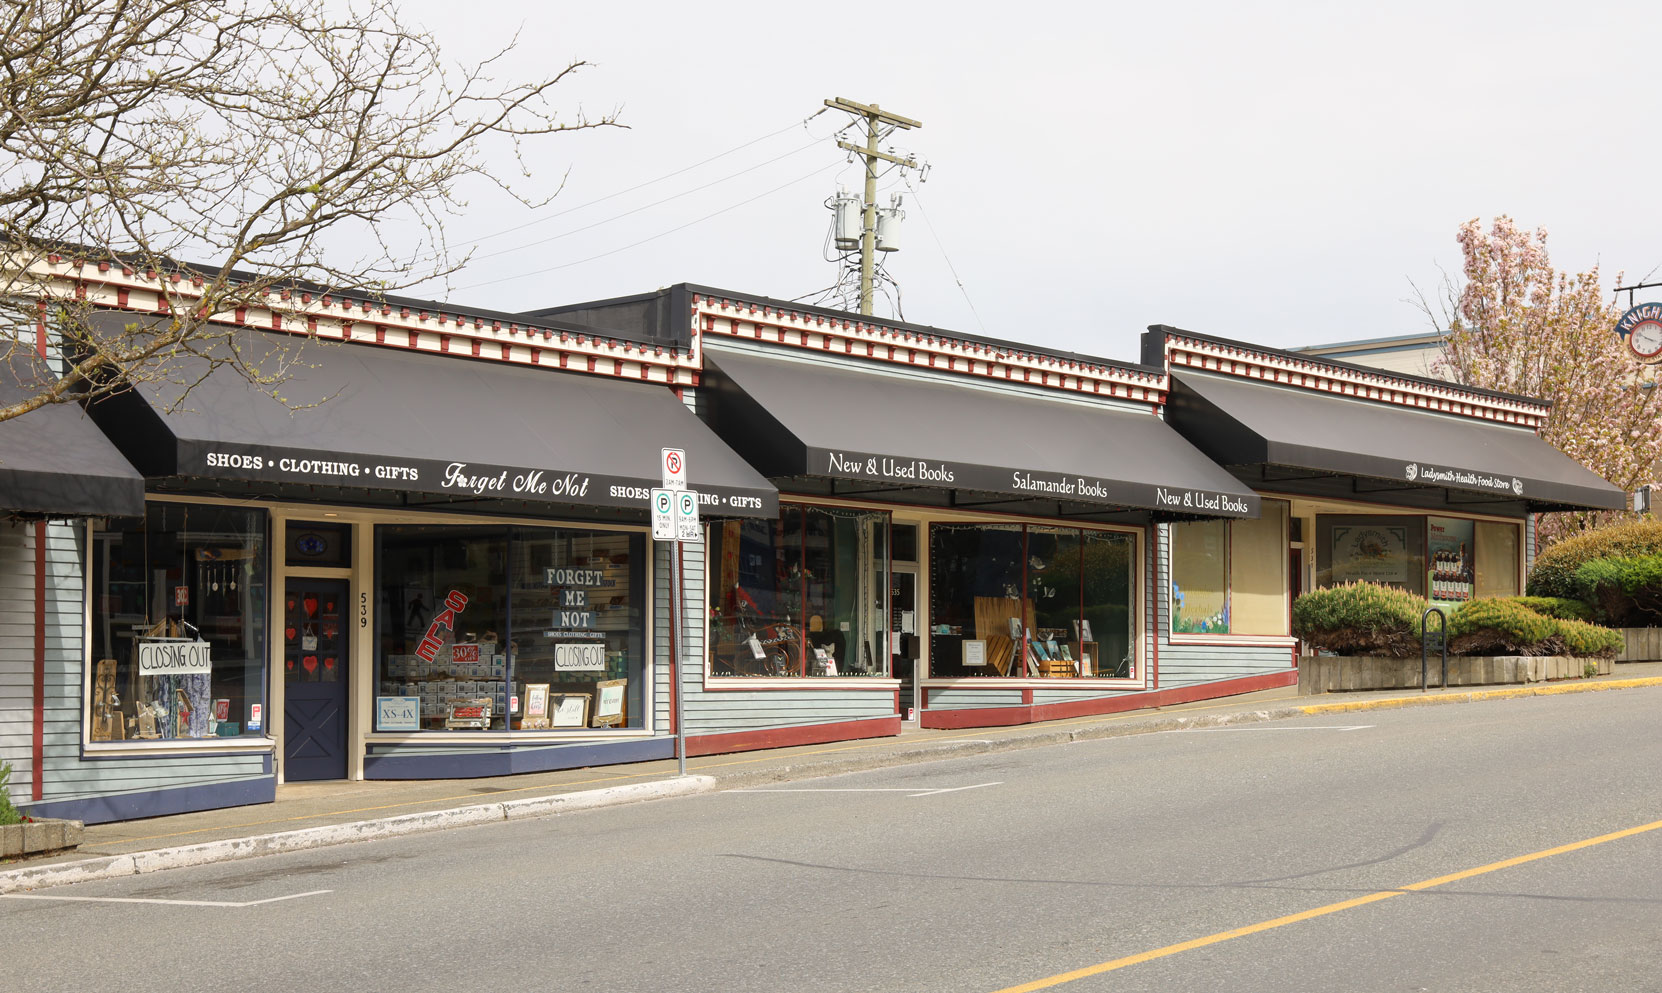 From left to right, 539-535-531 1st Avenue in downtown Ladysmith. These store fronts in a commercial building originally built in 1945.